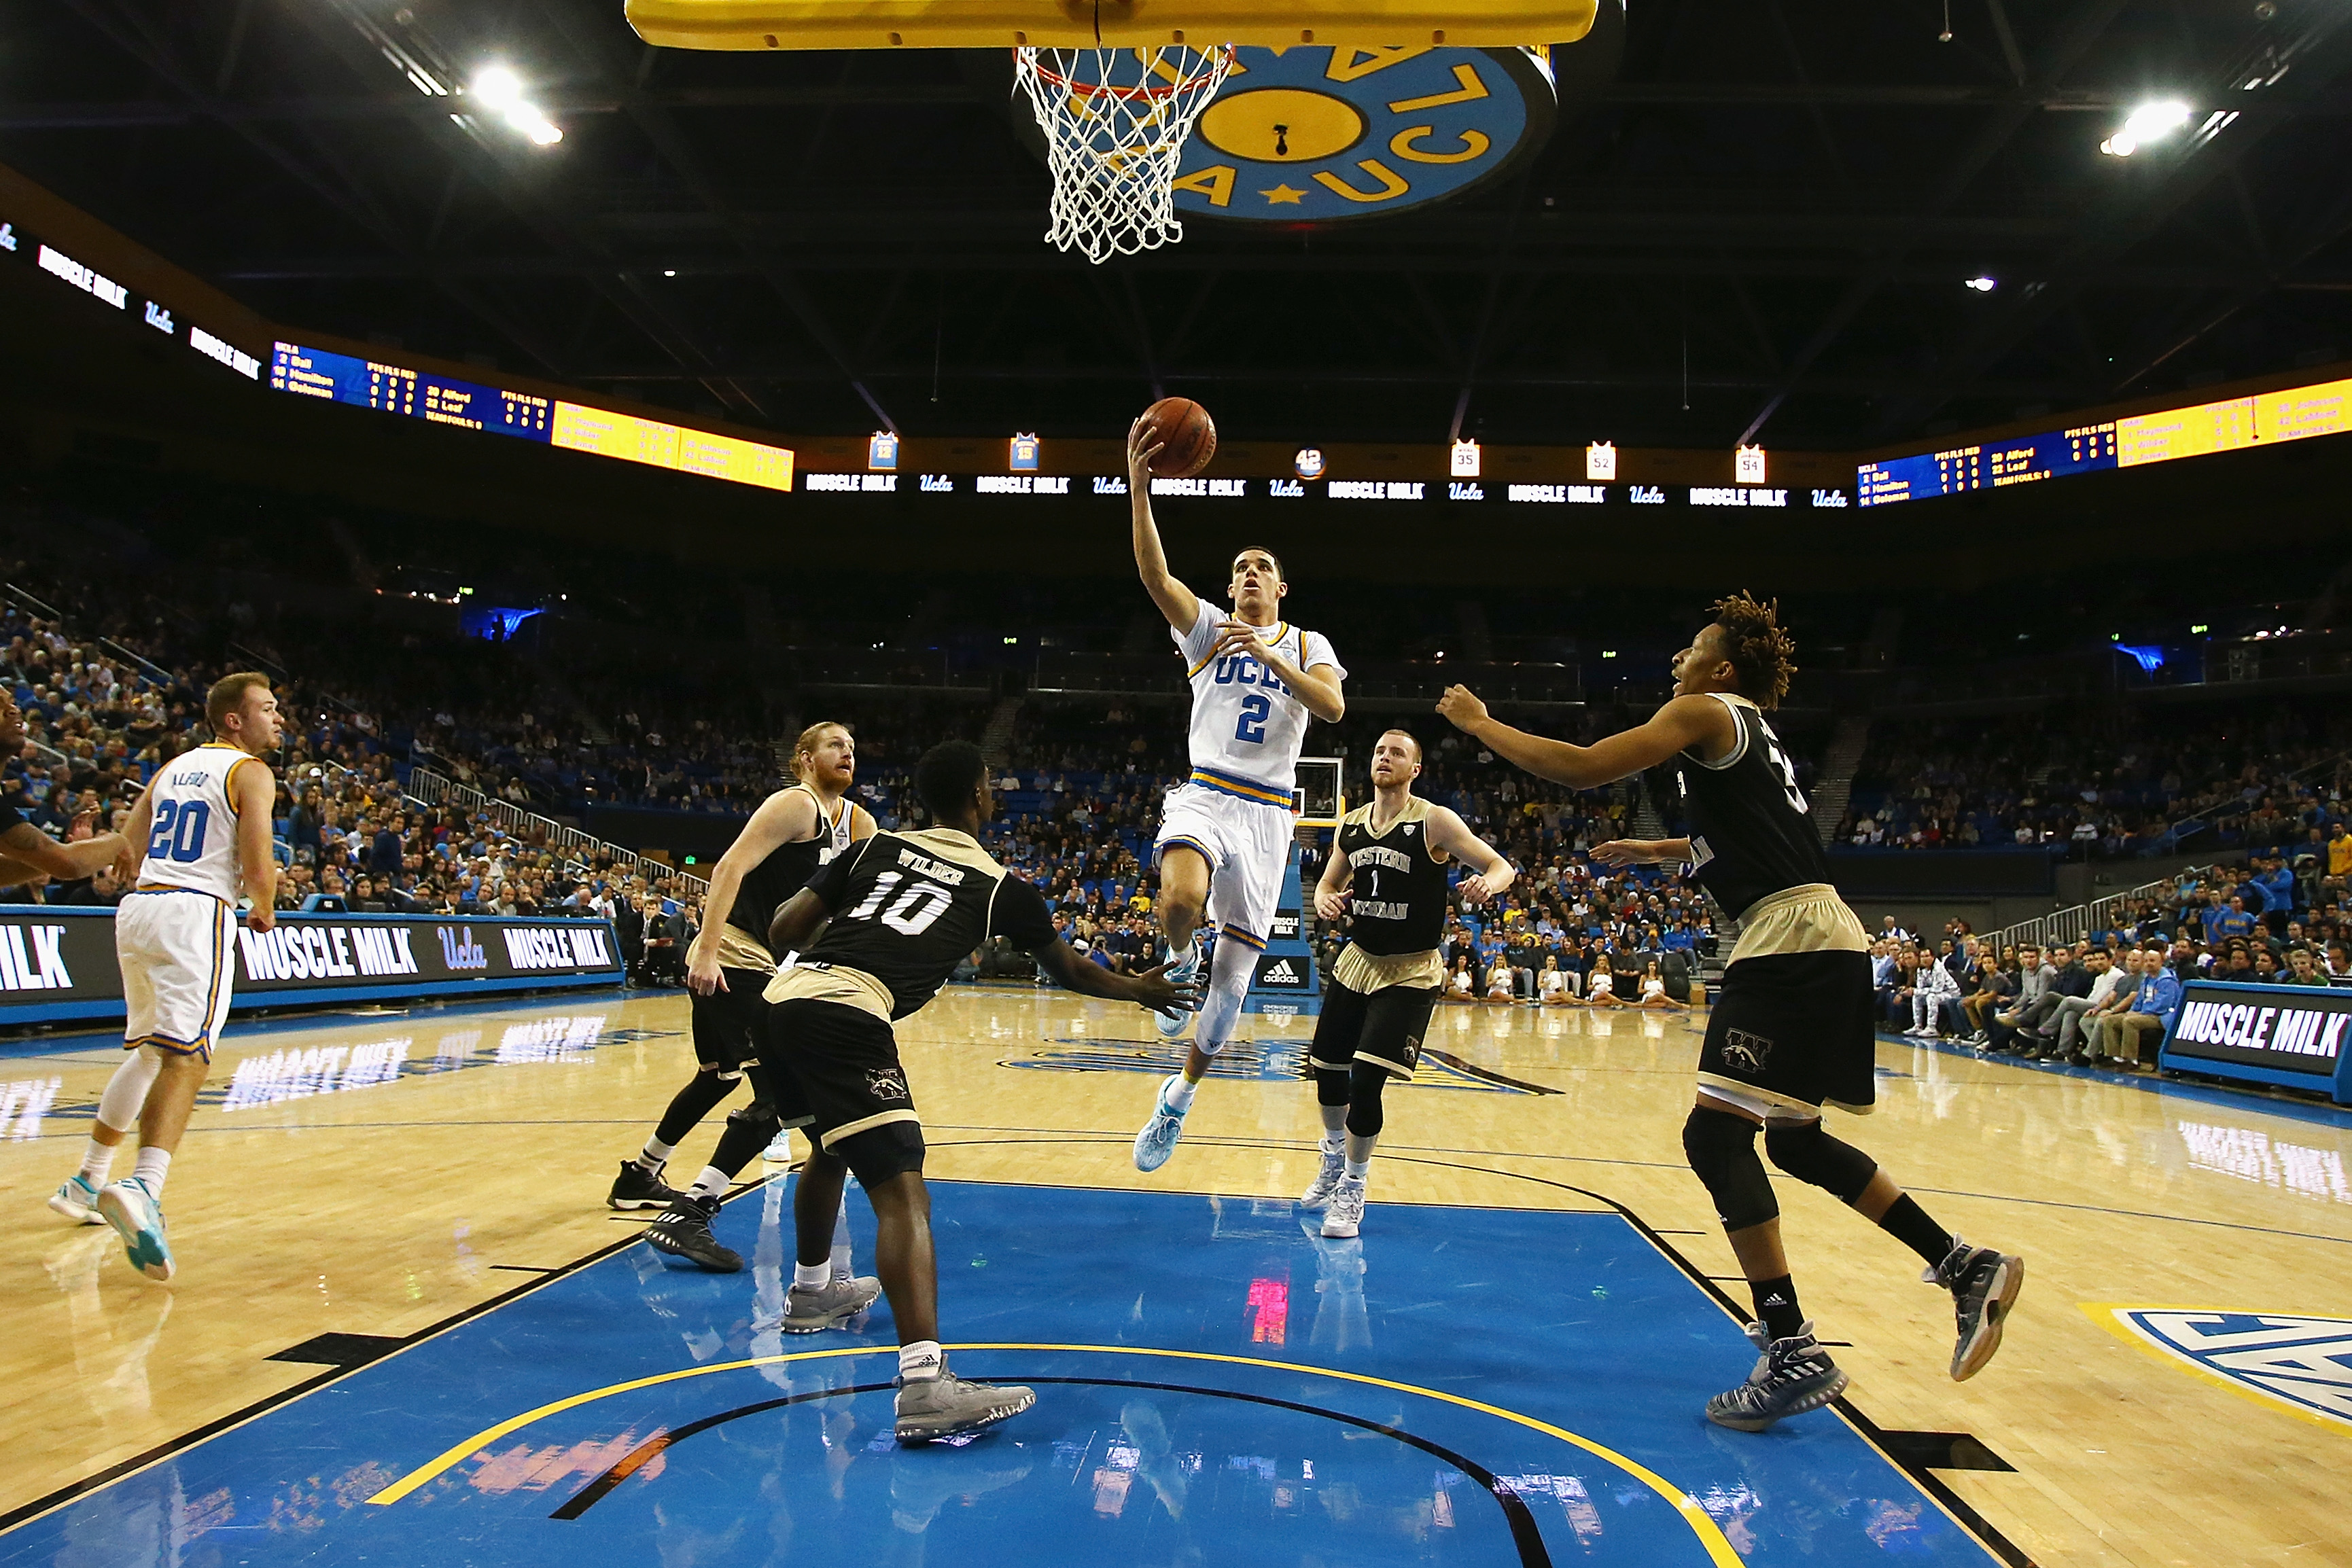 Lonzo Ball #2 of the UCLA Bruins drives to the basket during the first half against the Western Michigan Broncos at Pauley Pavilion on December 21, 2016 in Los Angeles, California.